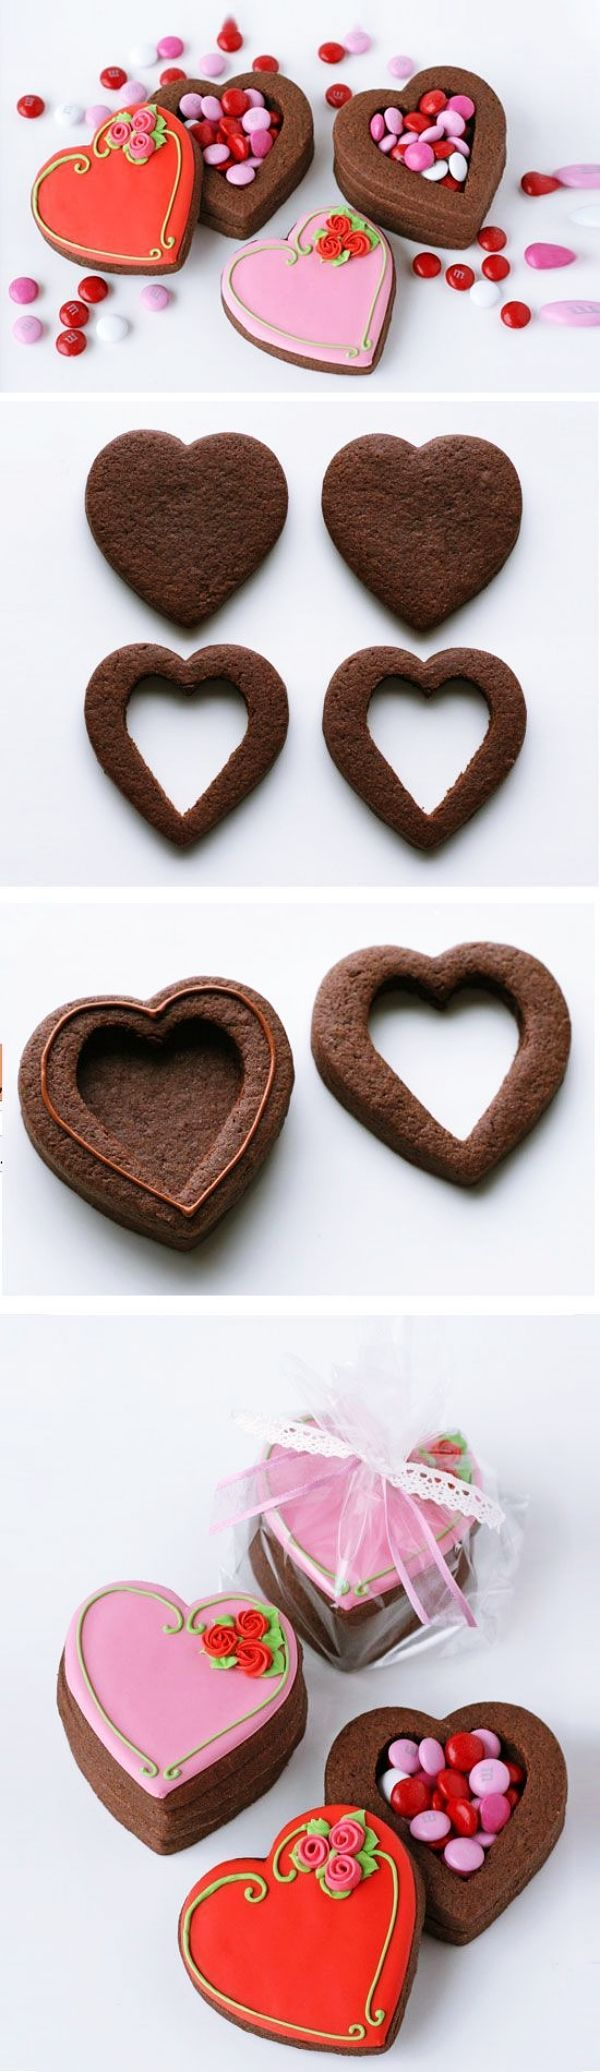 Handmade-Valentine's-Day-Crafts-Ideas-to-Gift-Him || Valentines Day Ideas for …